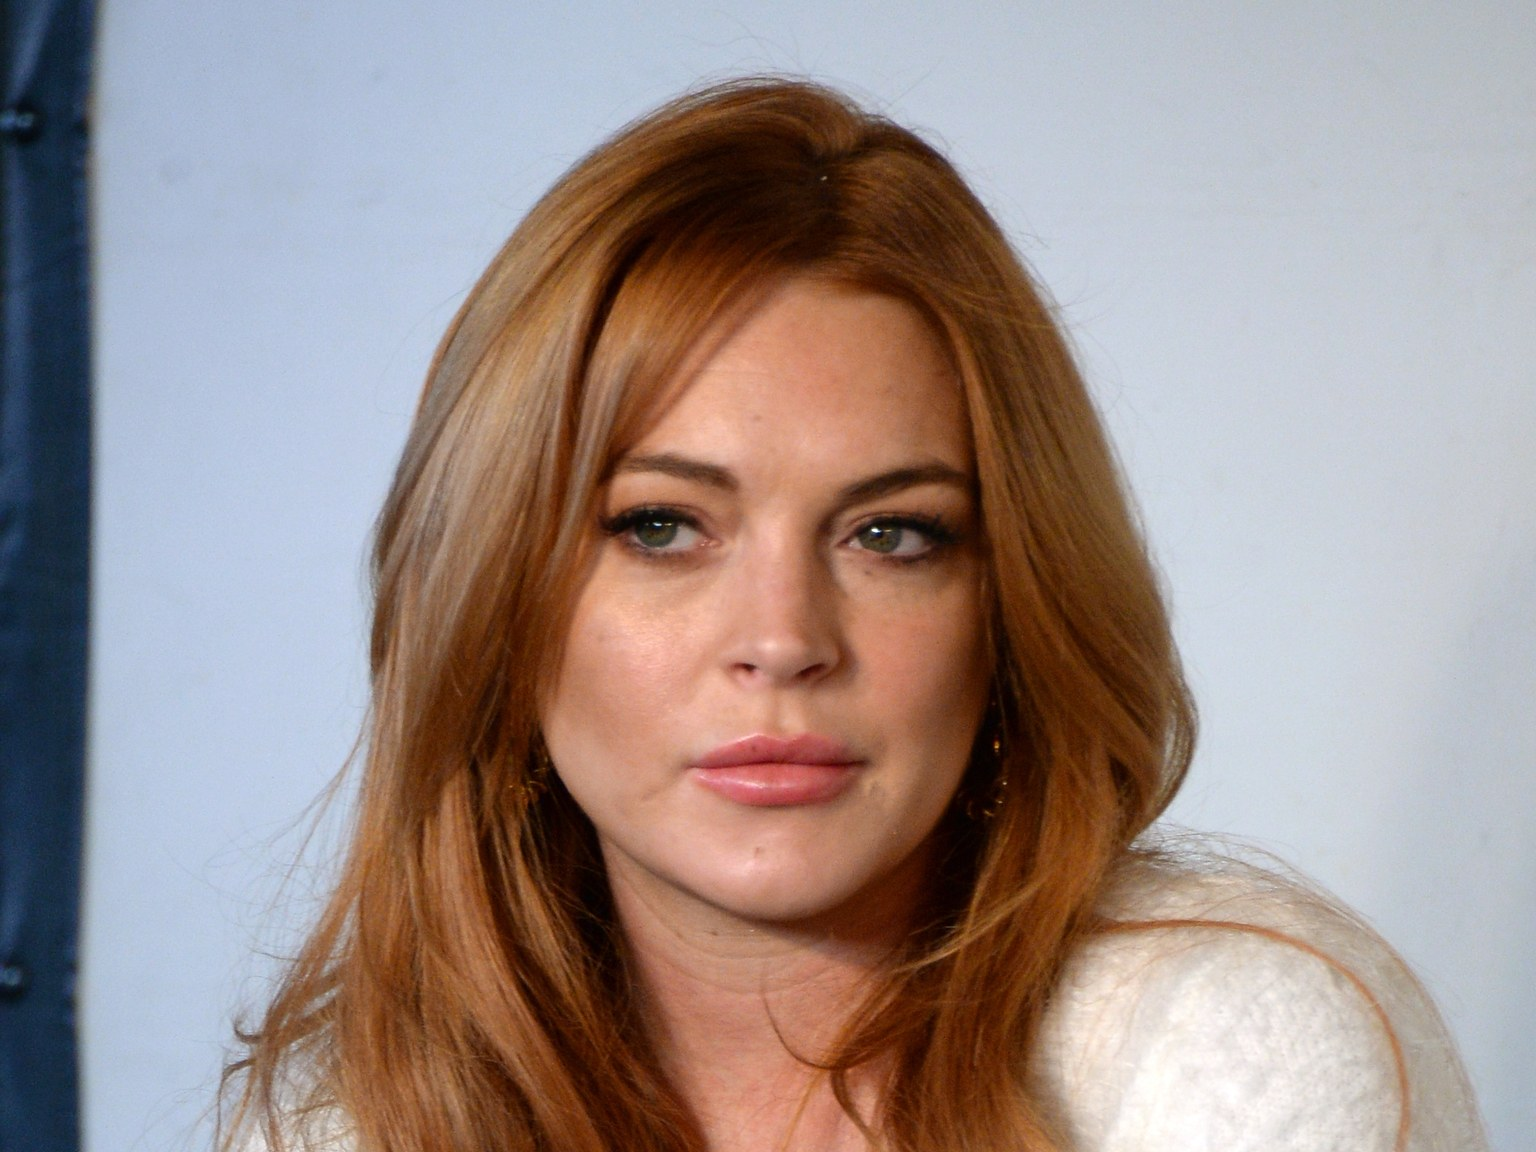 Lindsay Lohan Threatens to 'Become Vladimir Putin' in Her New TV Series